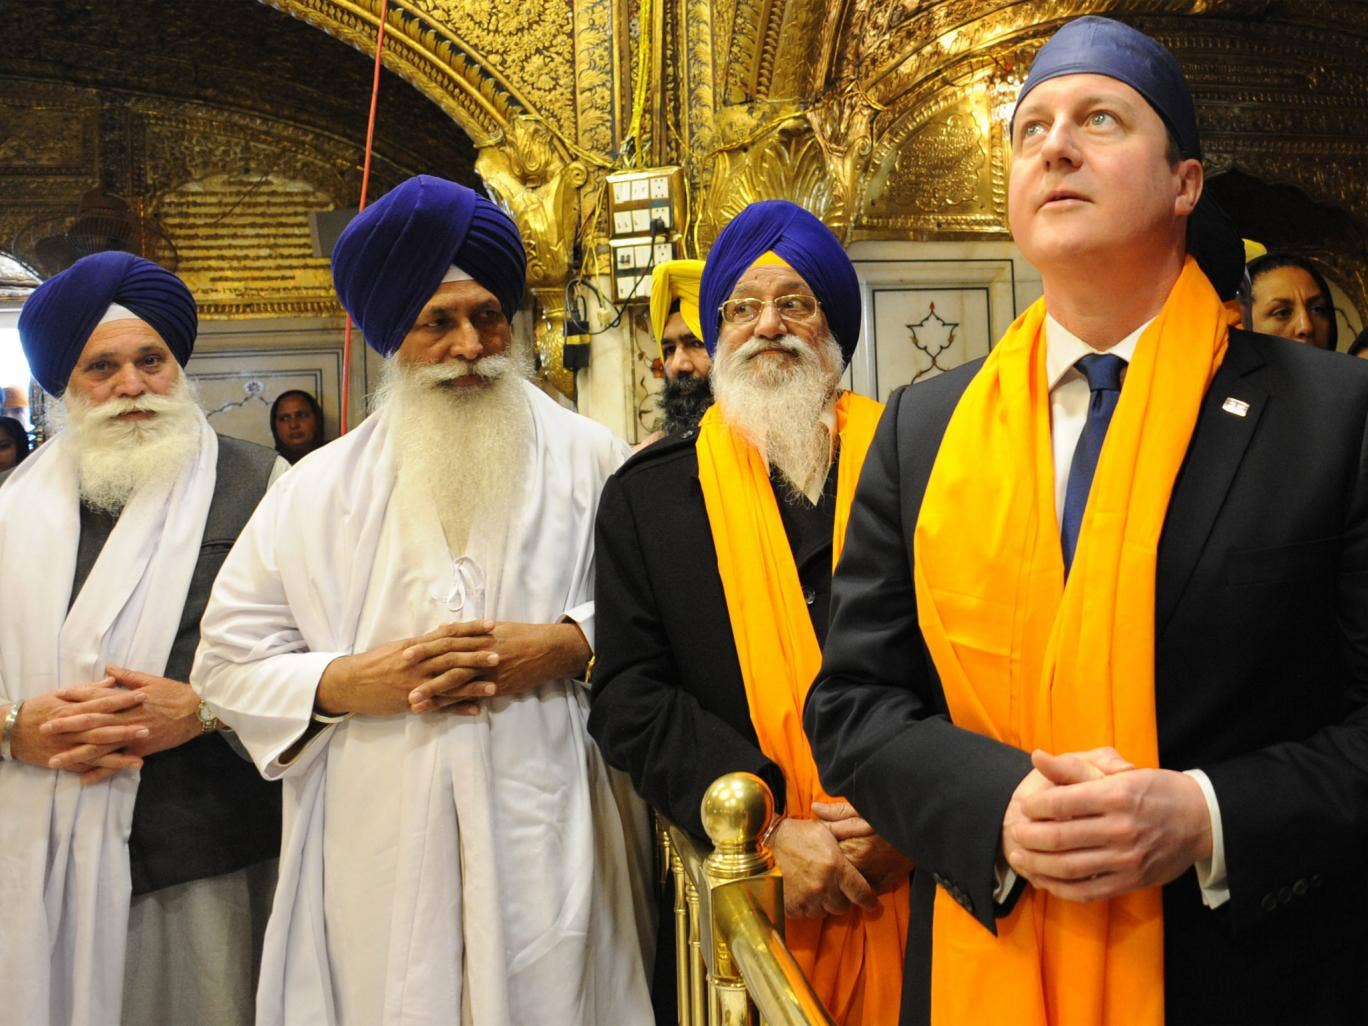 David Cameron visits the Golden Temple in Amritsar